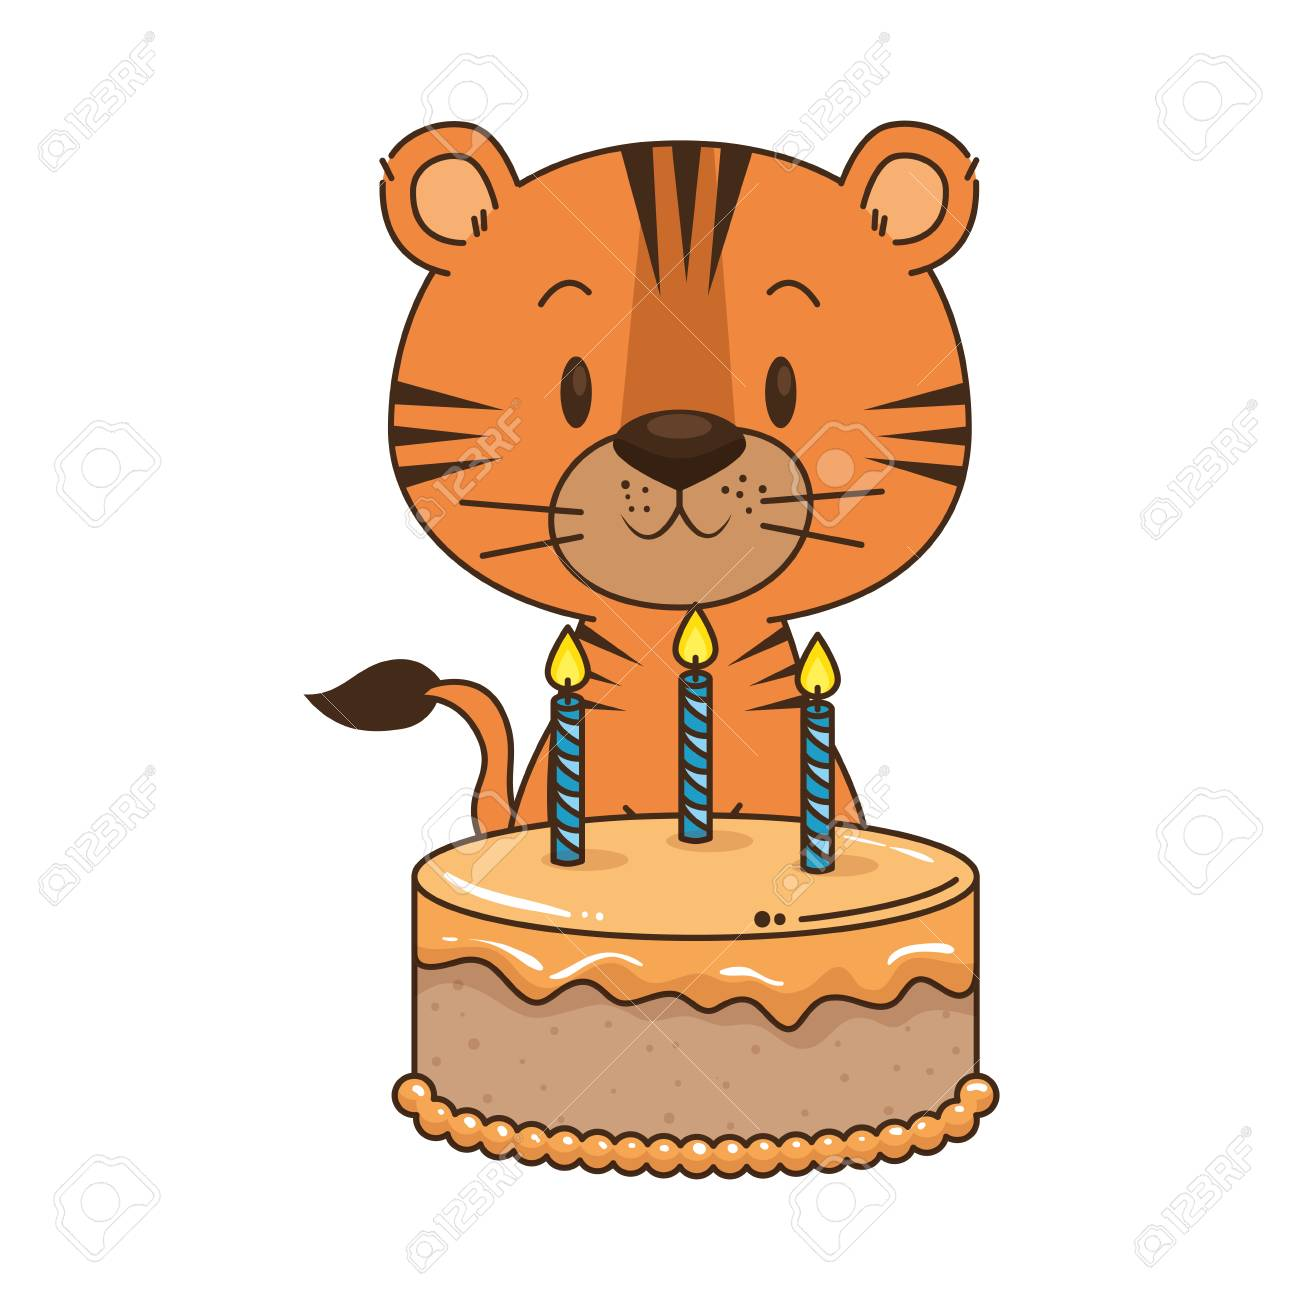 Cute Little Tiger Character Vector Illustration Design Royalty ...